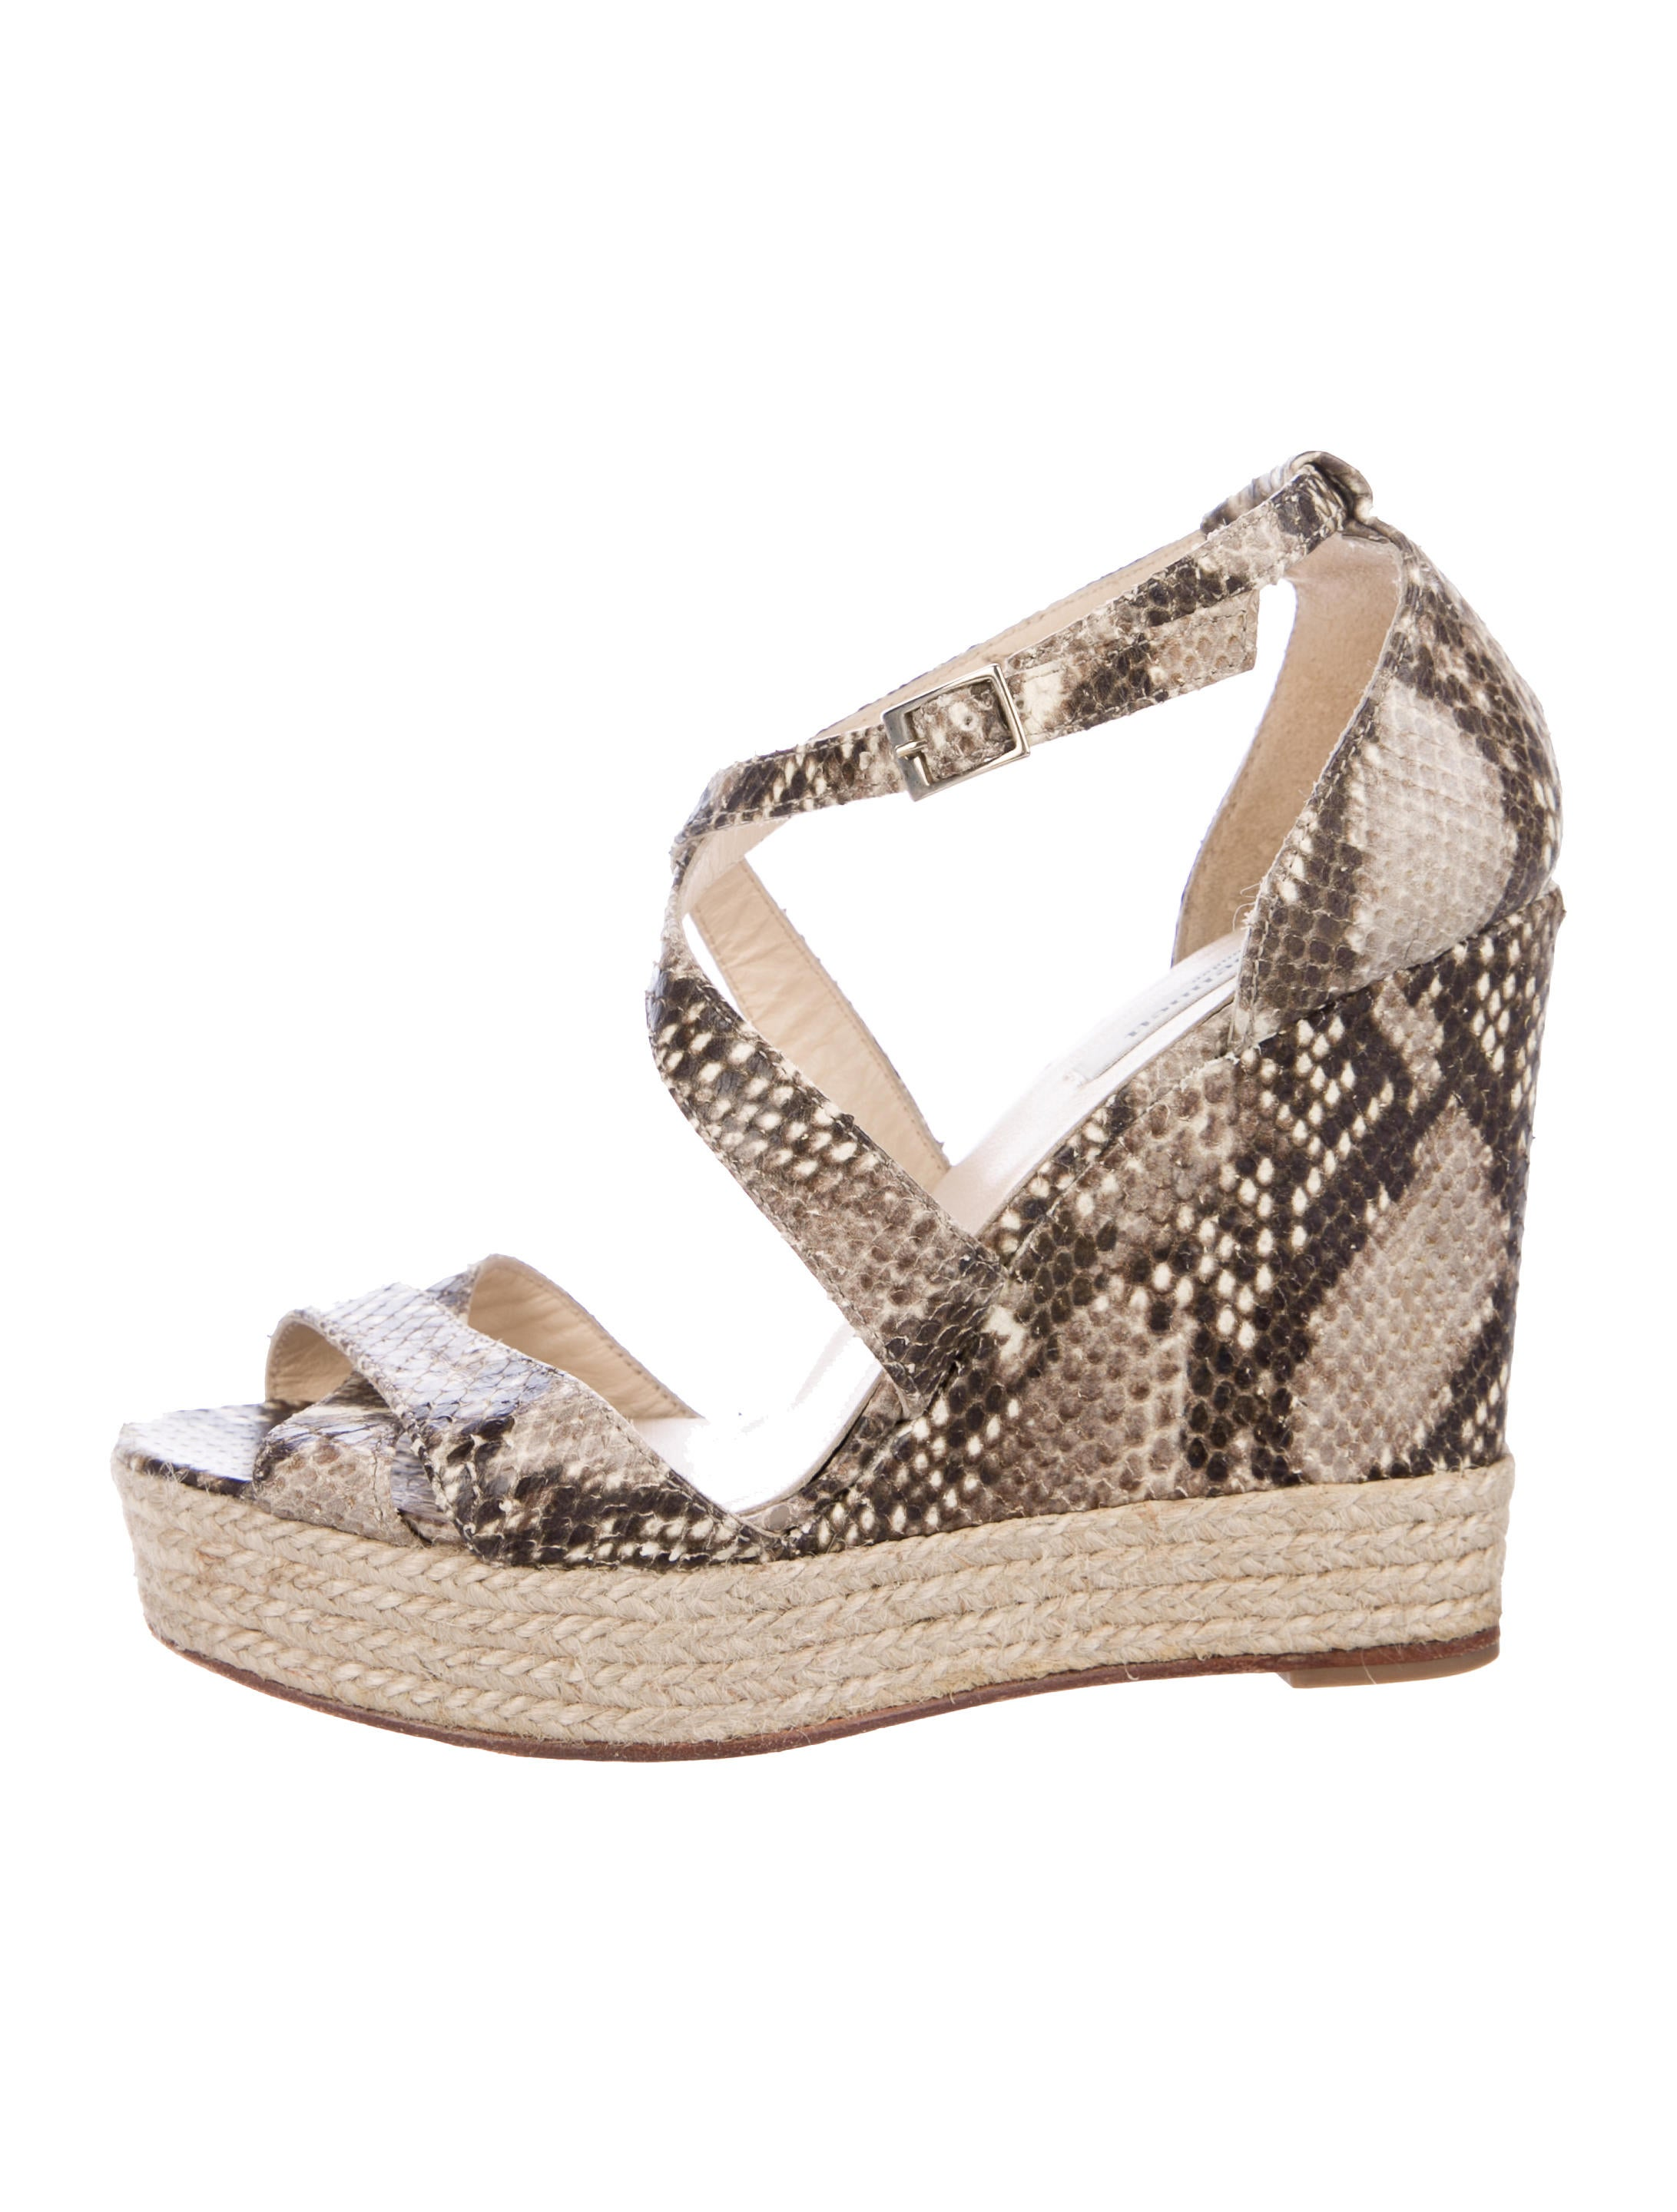 L.K. Bennett Embossed Platform Wedges online cheap authentic outlet free shipping BNFGGltxHF